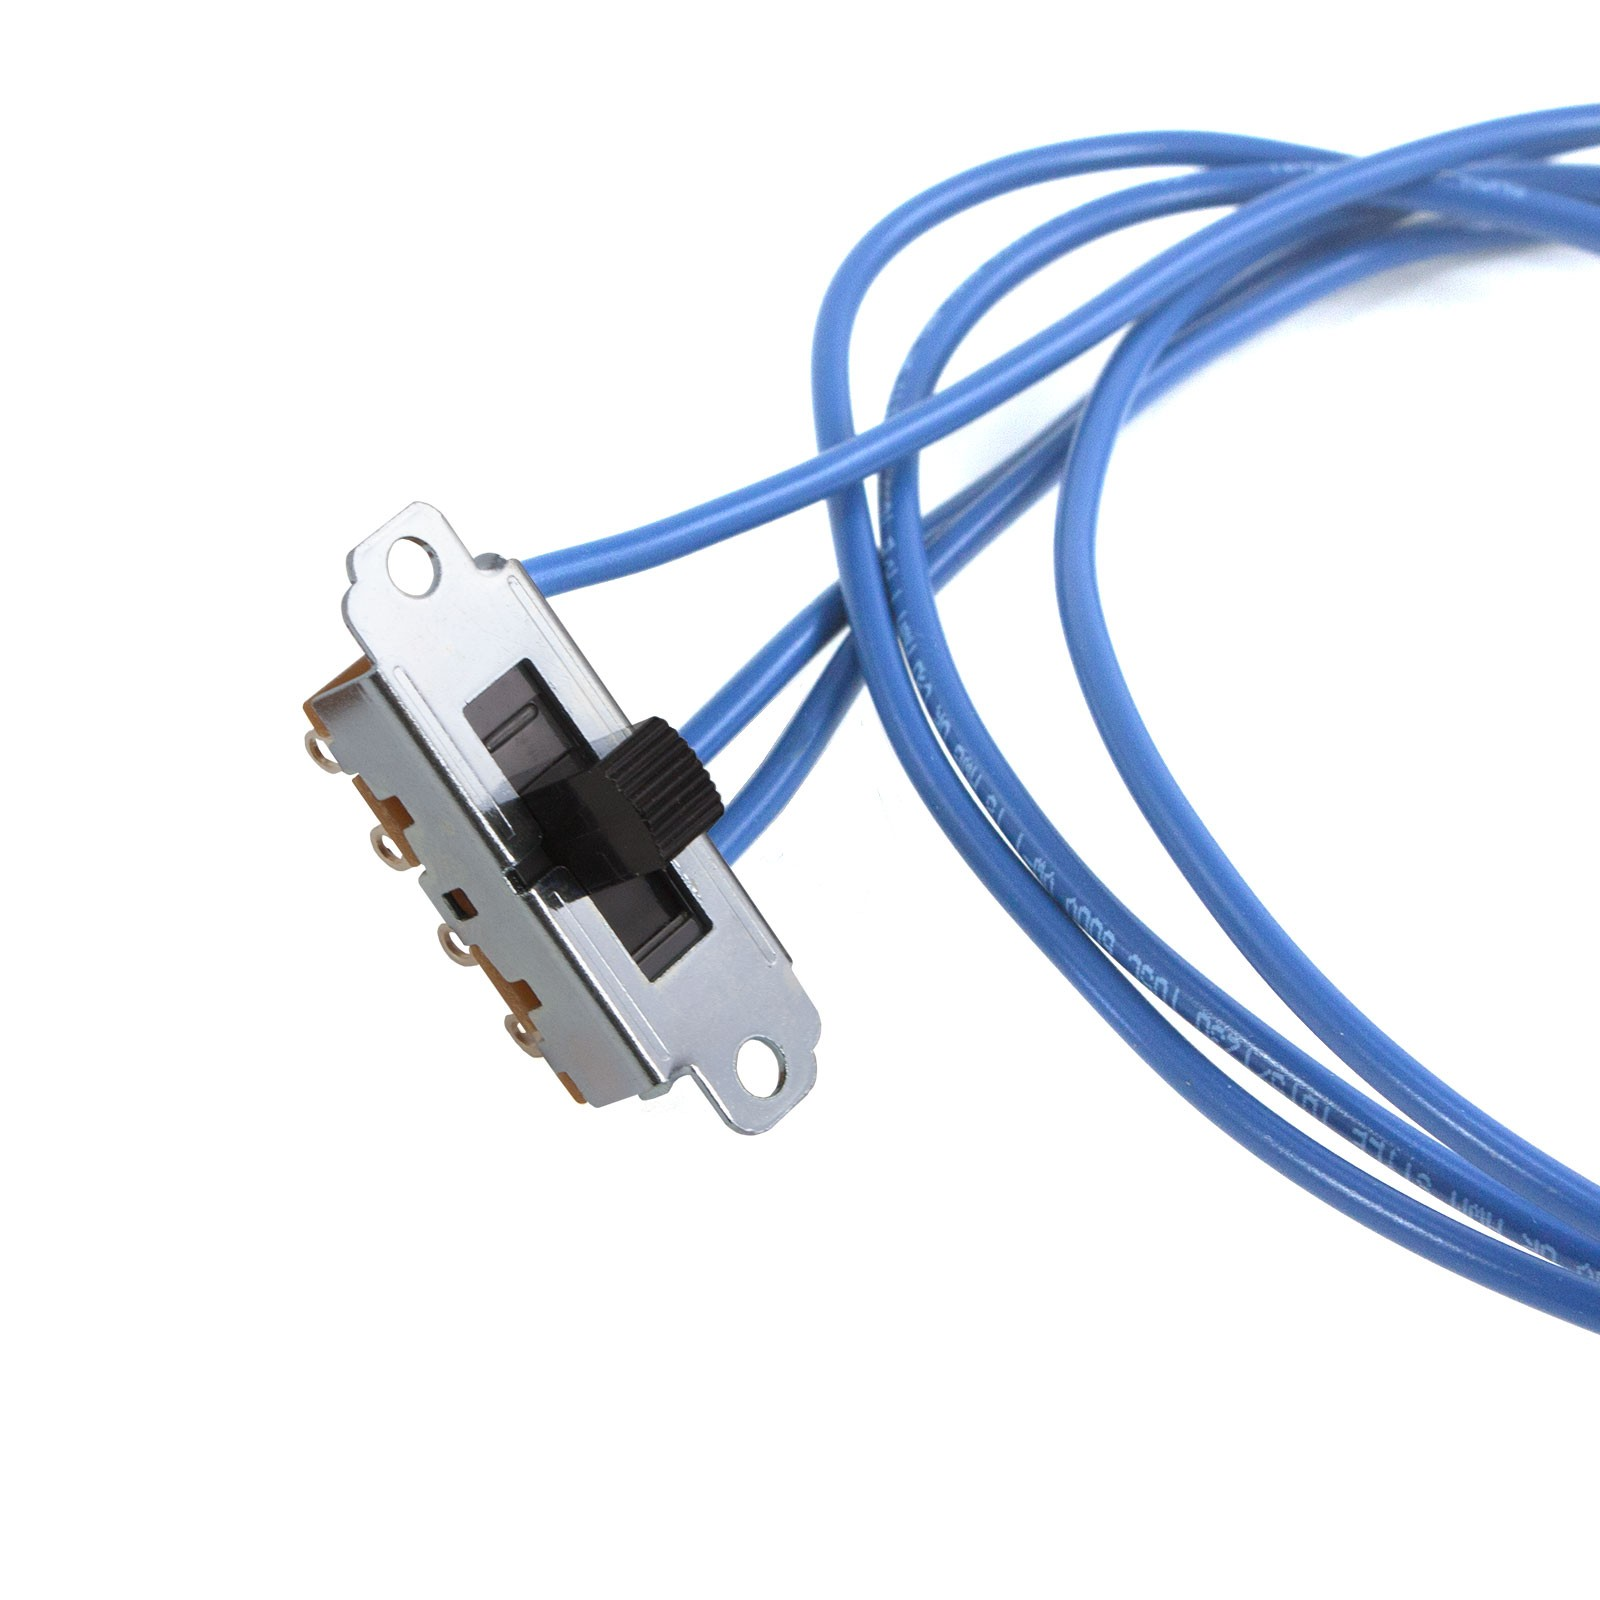 Up Normal Down Switch W Wires Complete For Mib Series